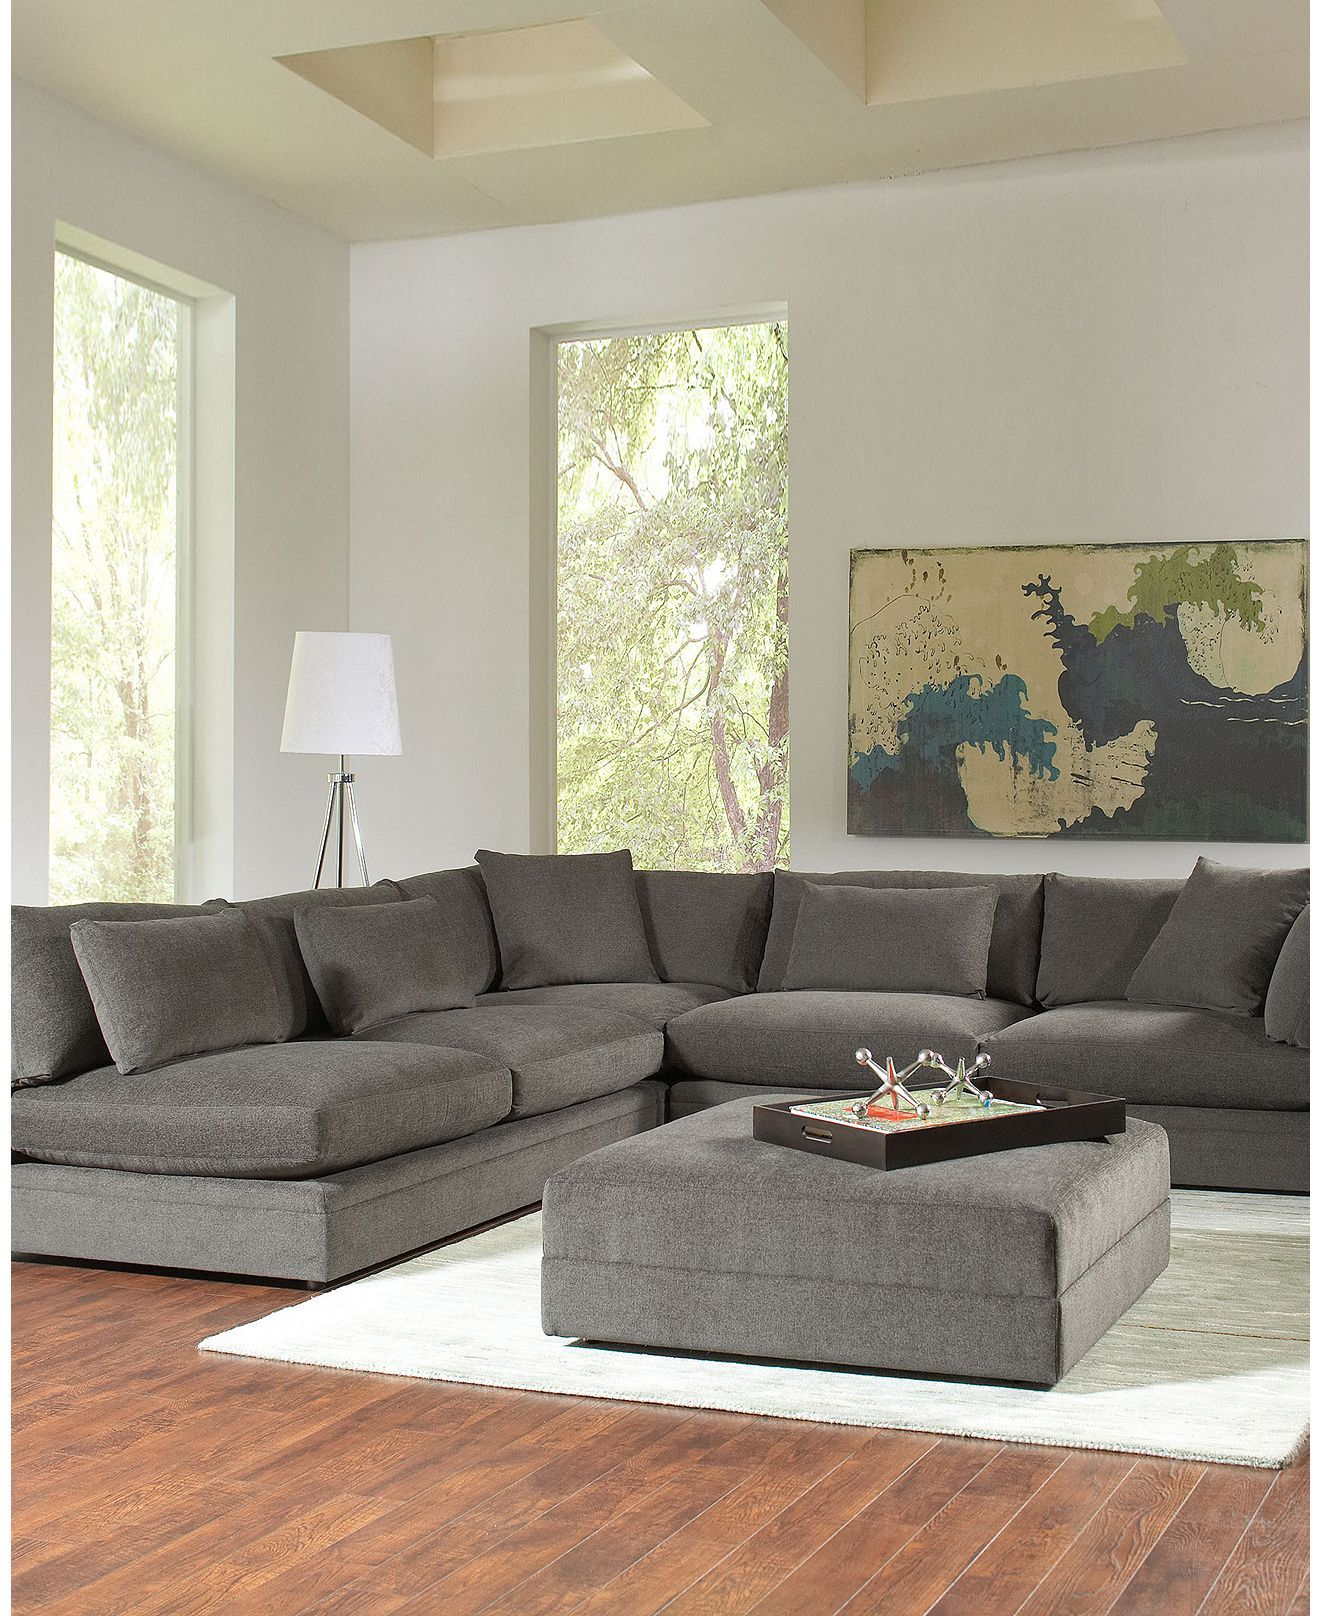 Dana Living Room Furniture Sets & Pieces